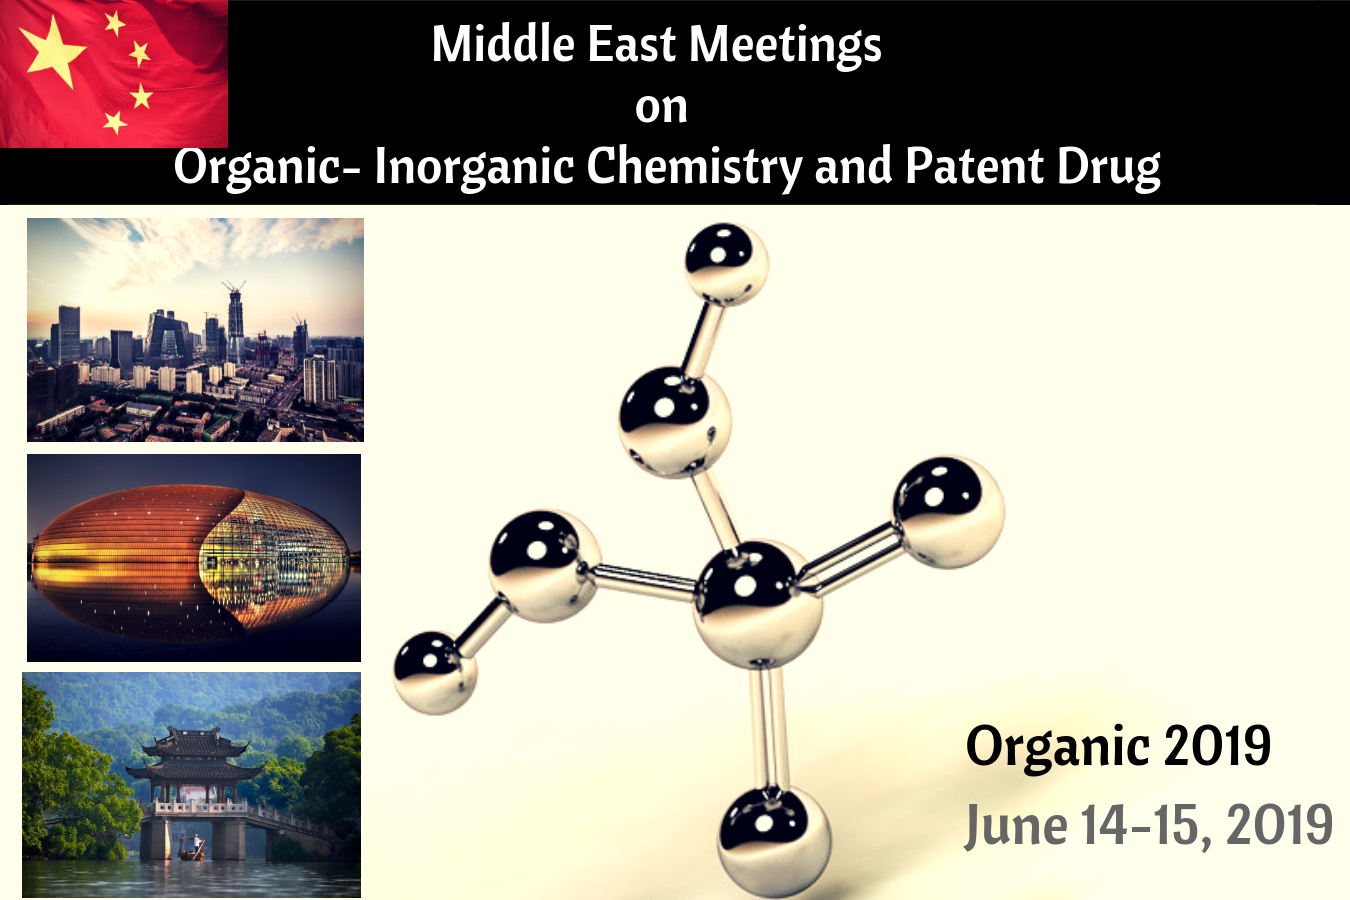 Middle East Meetings on Organic-Inorganic Chemistry & Patent Drug, China, Beijing, China